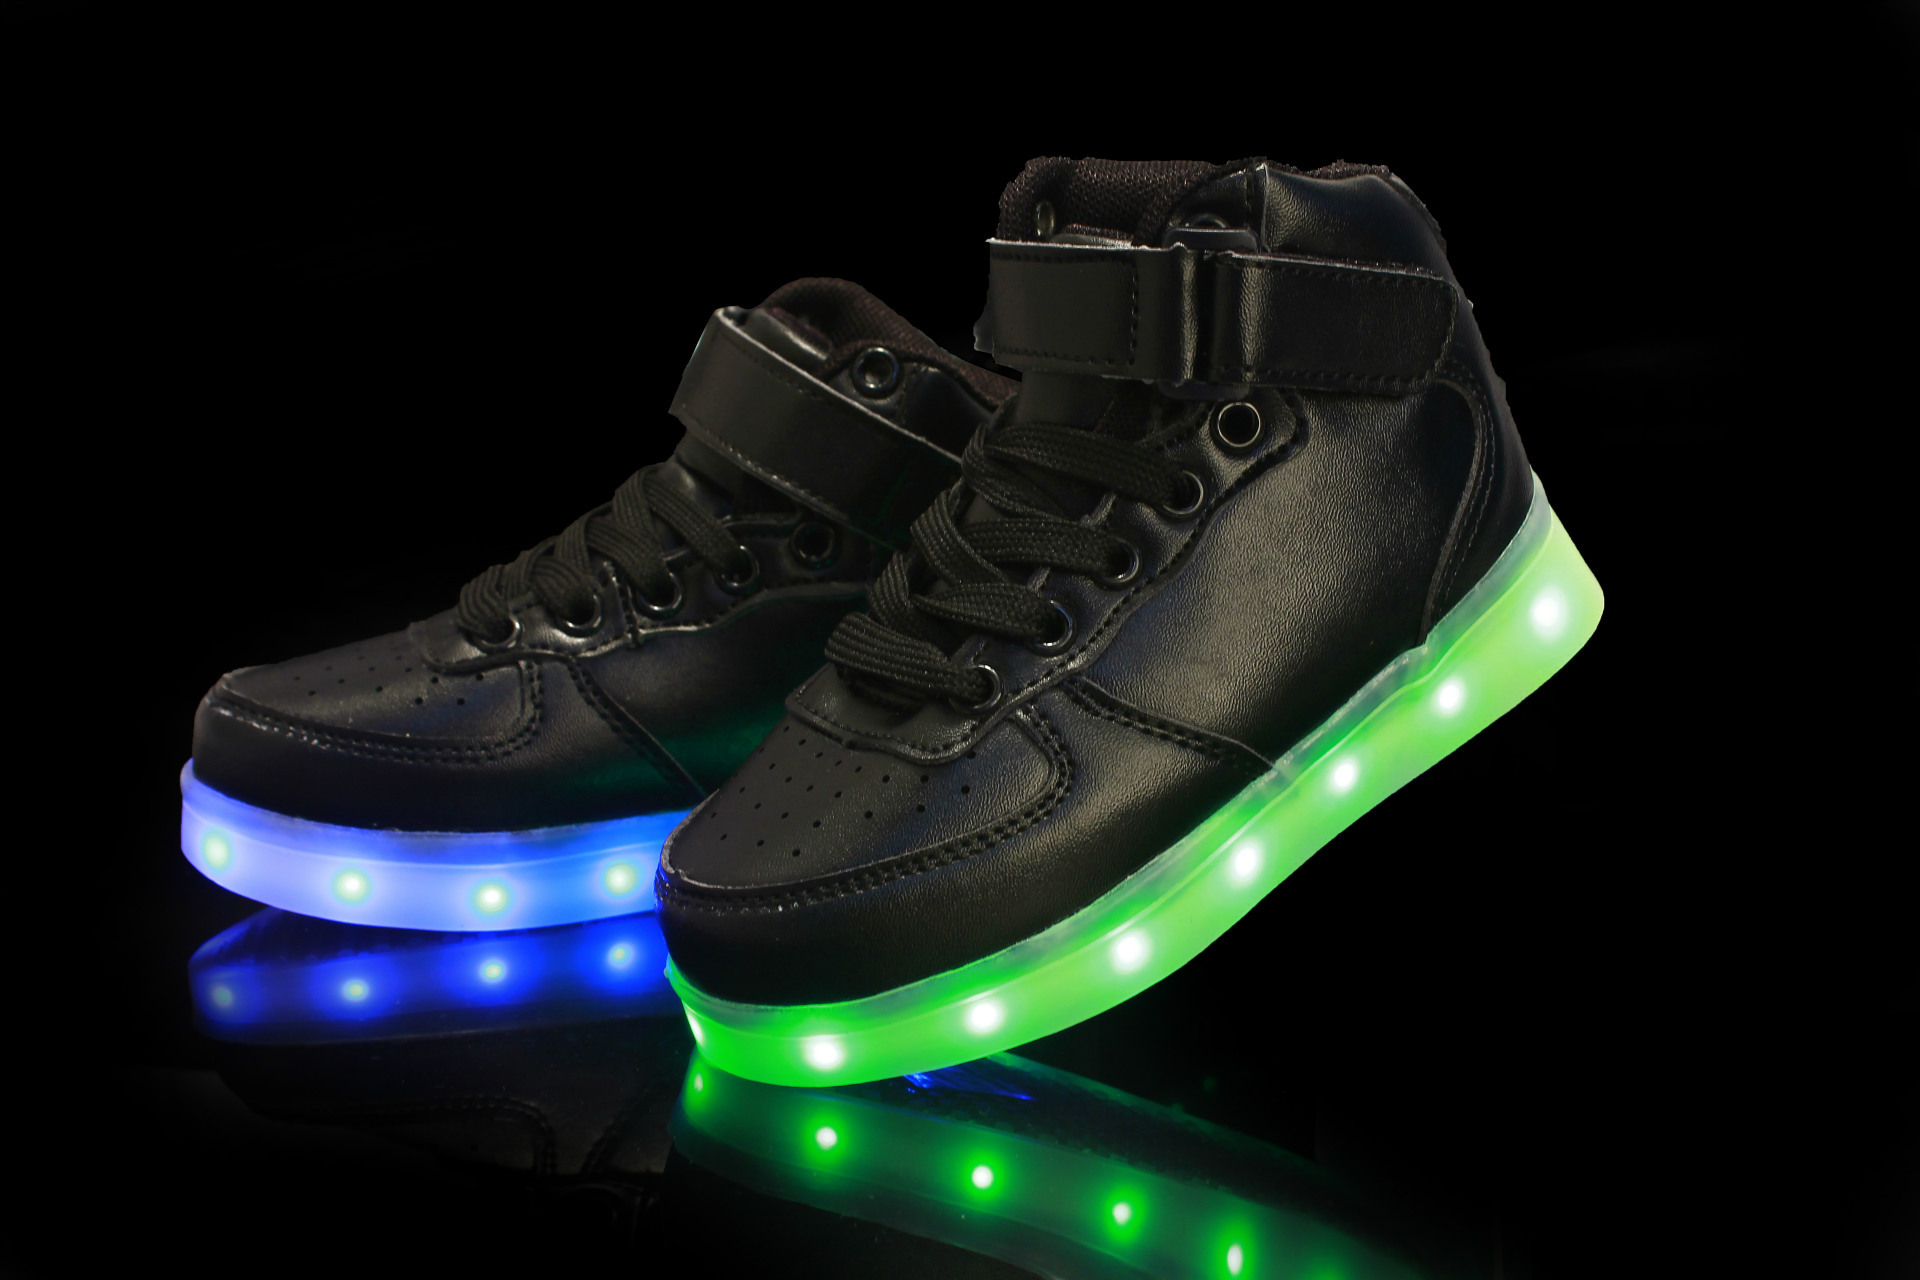 fc08a7cc3ebb Kids Gift Children Boys Girls 7 LED Light Up Casual Shoes USB ...